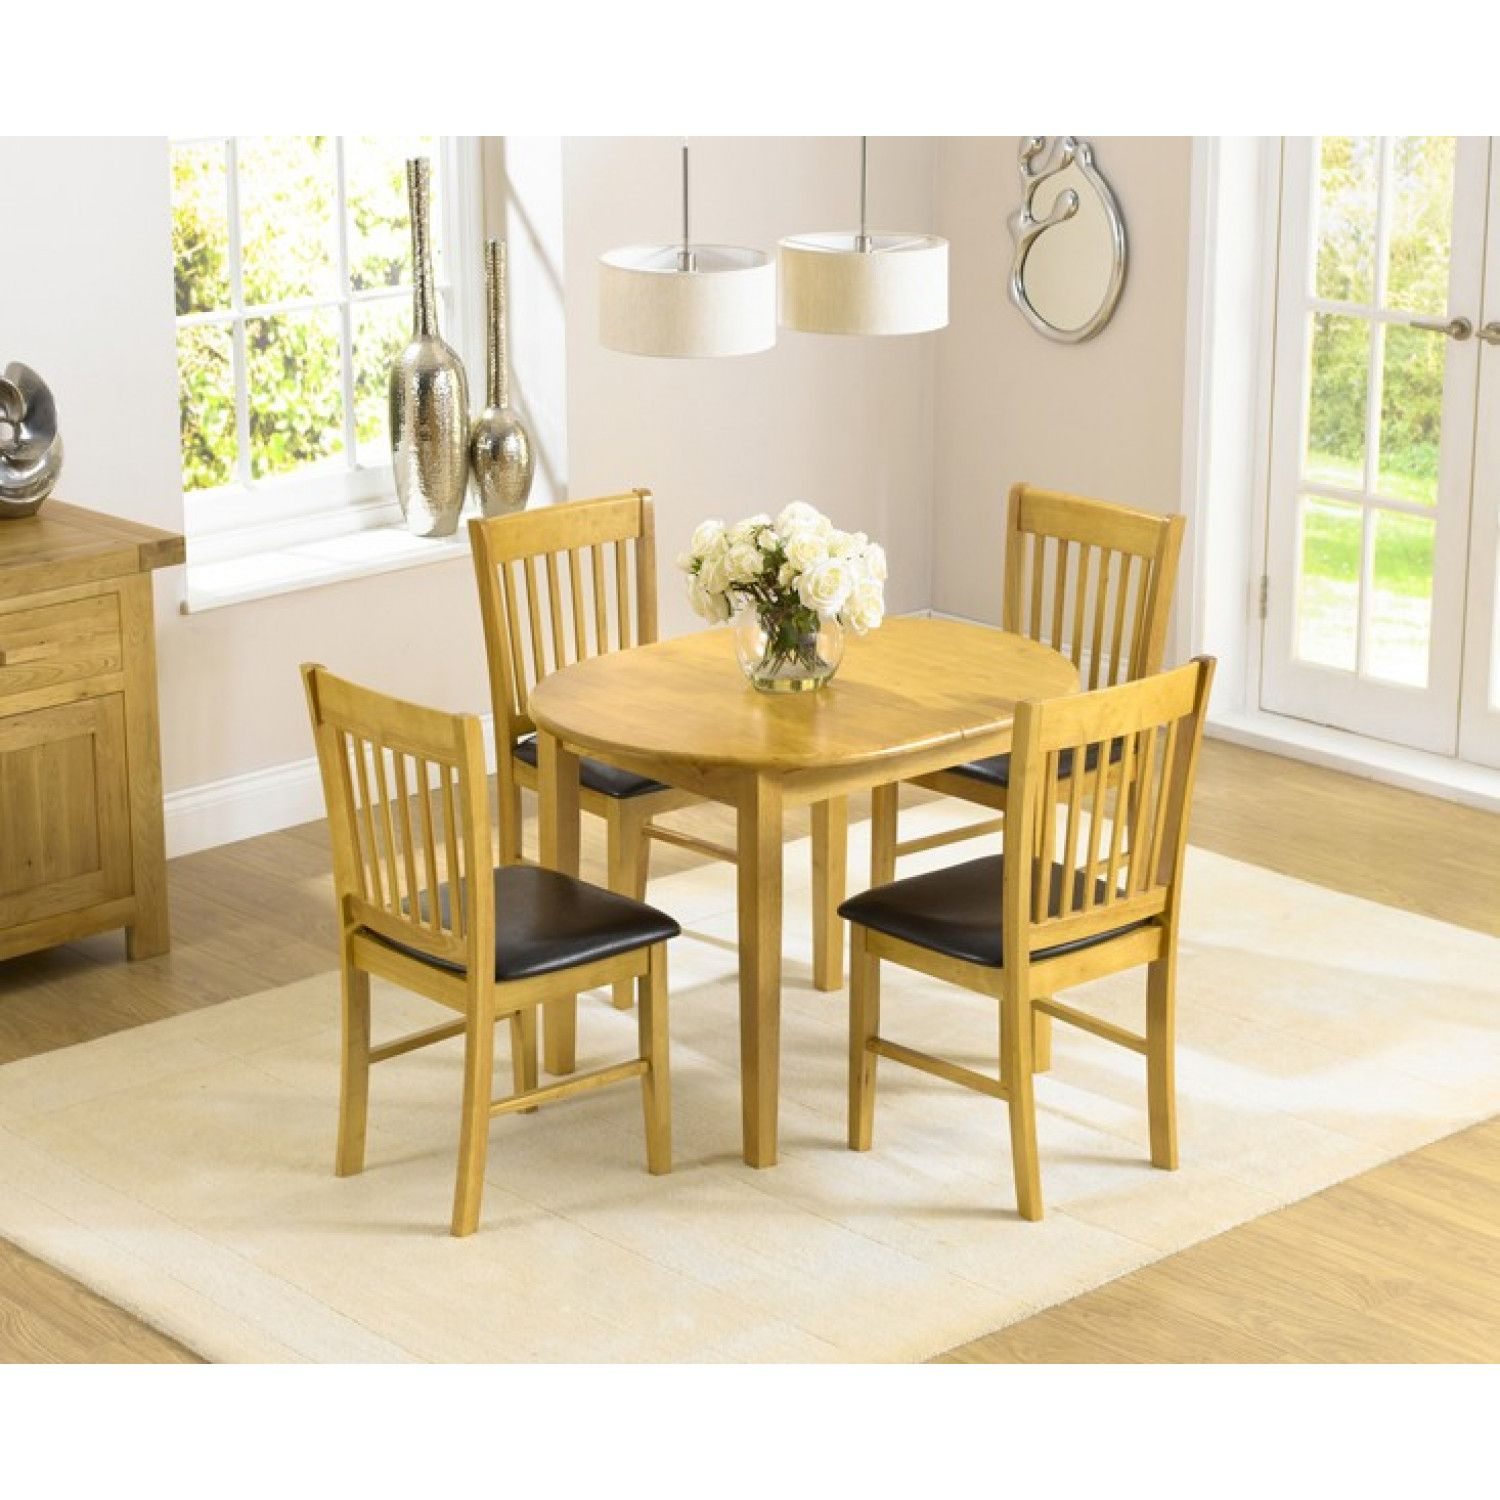 Bonsoni Is Proud To Present This Acton Solid Hardwood Dining